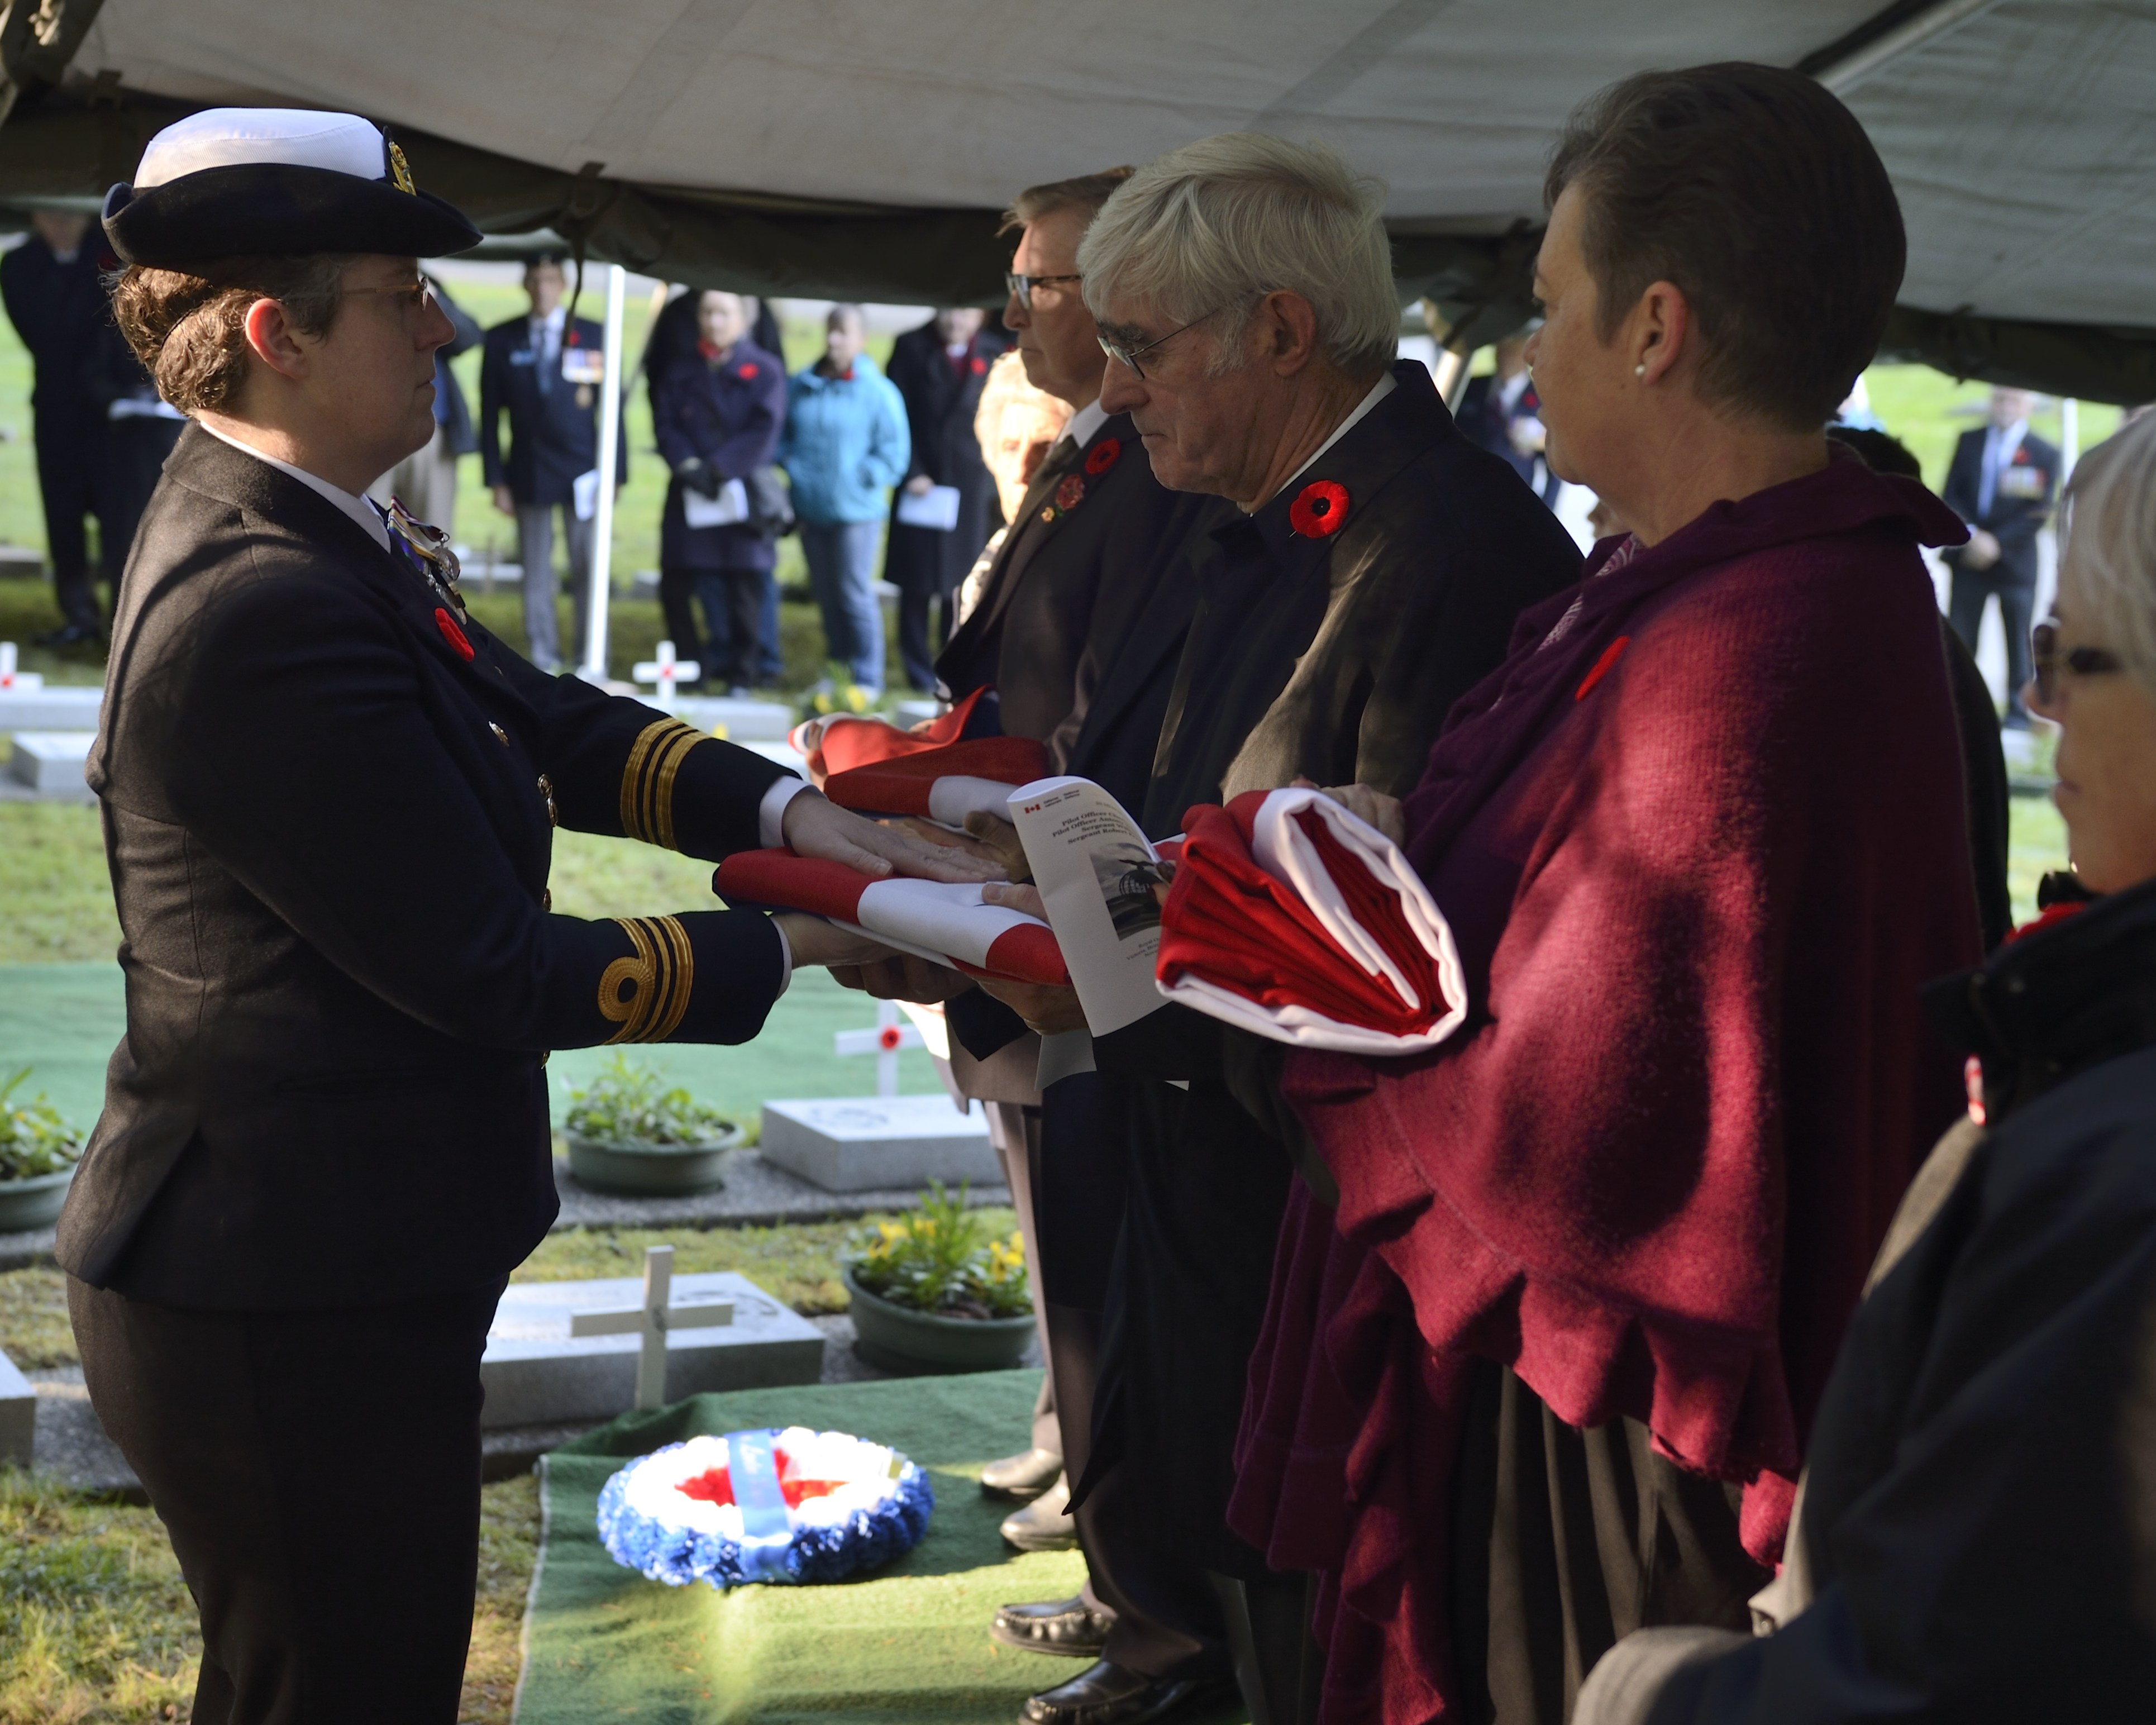 Family members of the British and Canadian aircrew of Avro Anson flight L7056, lost over Vancouver Island, British Columbia on October 30, 1942, are presented with flags during the interment service for the four members of the aircrew, held on November 10, 2014, at Royal Oak Burial Park in Victoria, British Columbia. PHOTO: Corporal Malcolm Byers